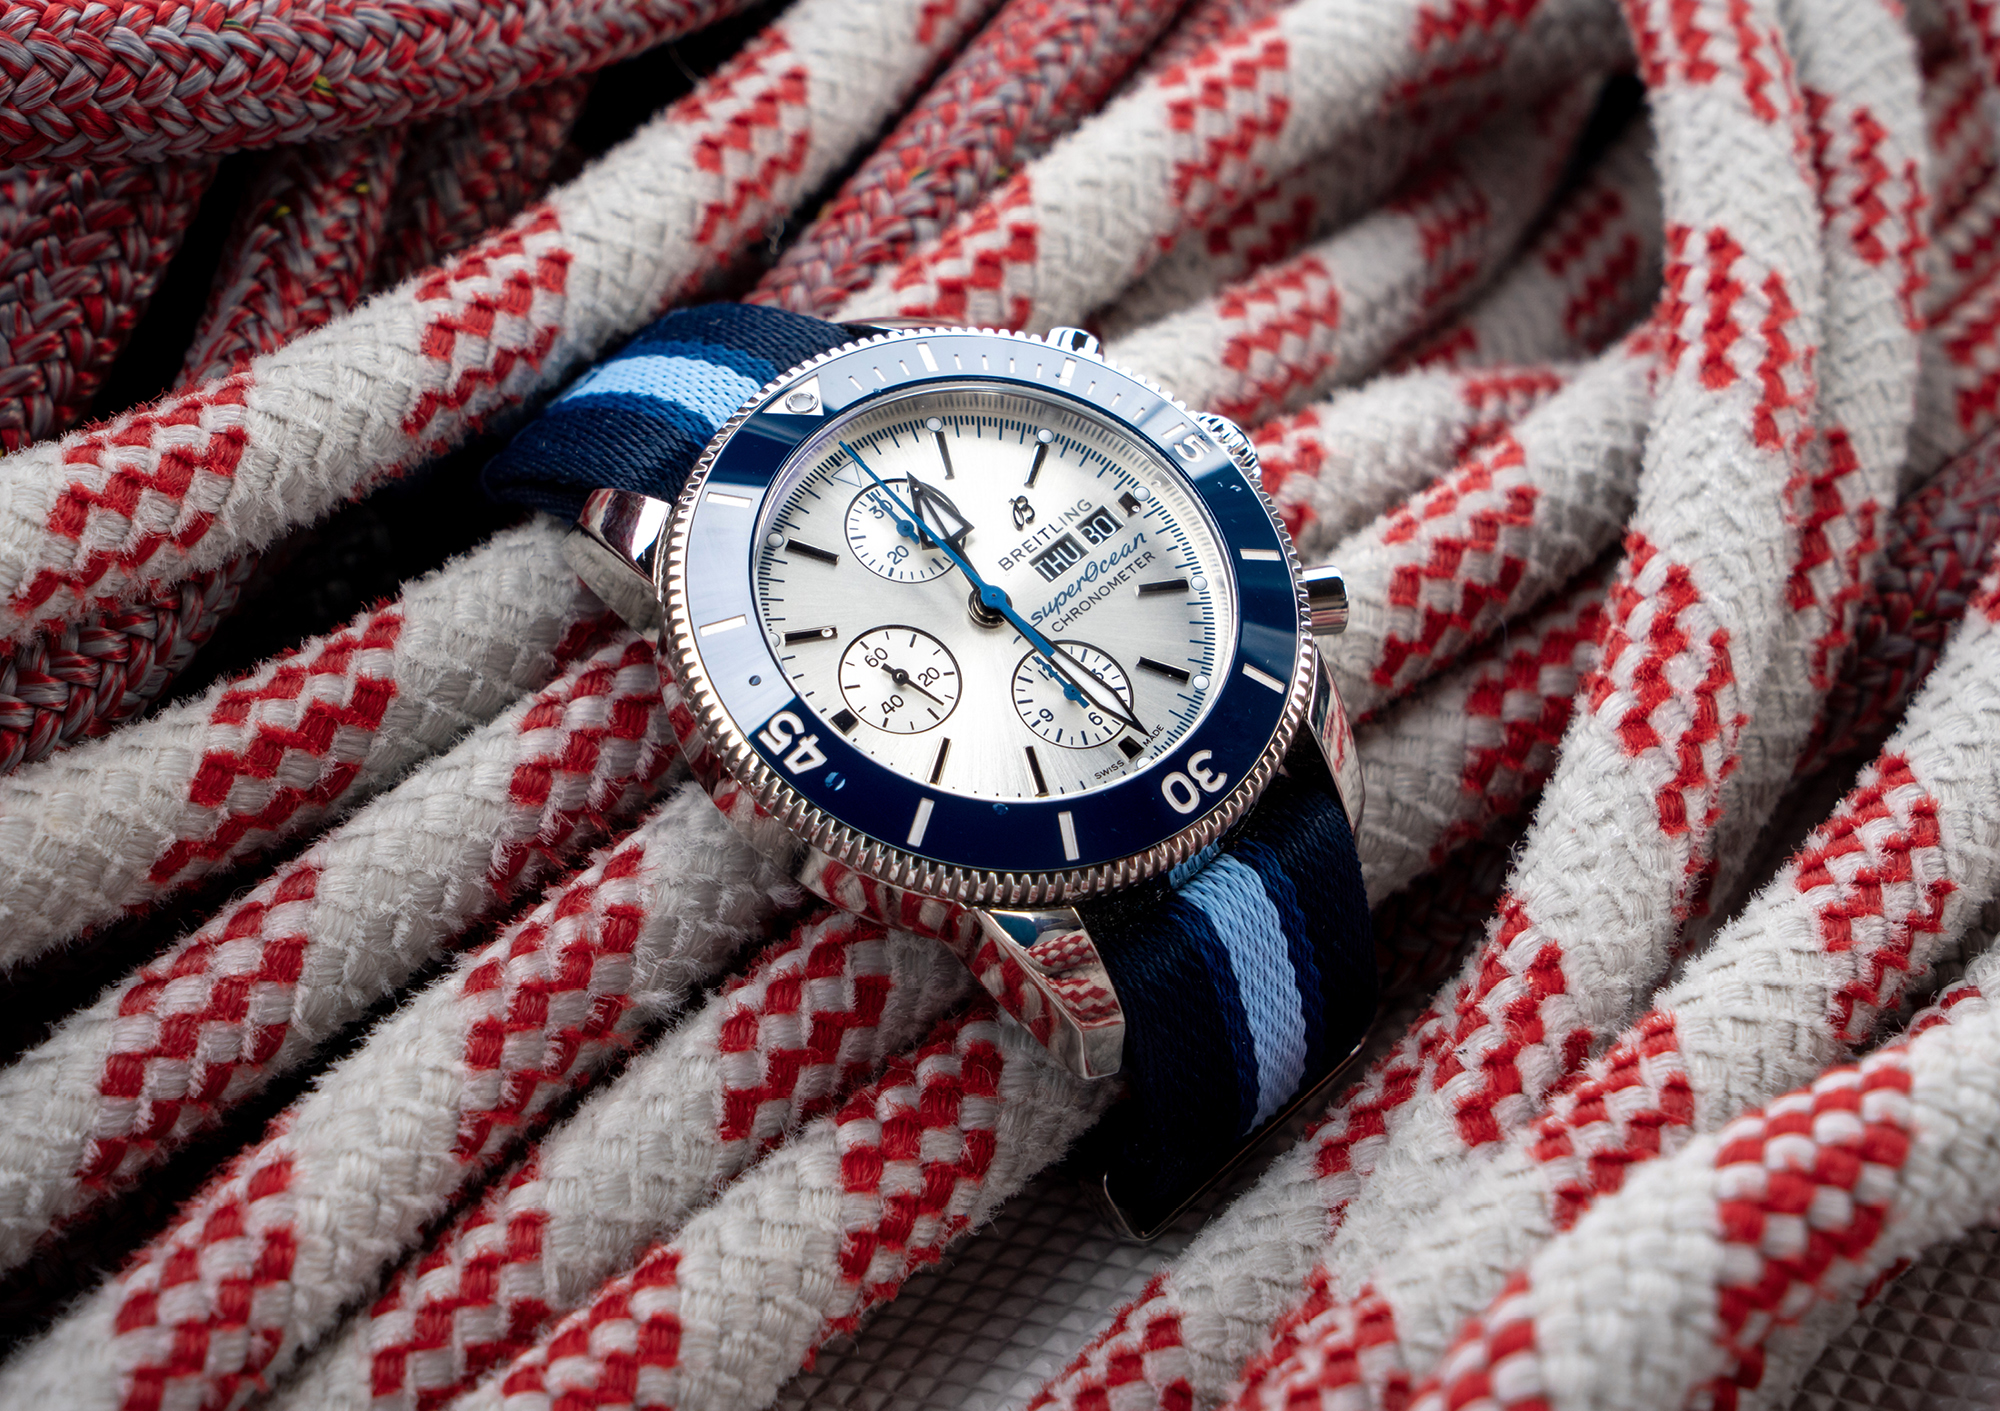 Breitling's Superocean Heritage Ocean Conservancy Limited Edition watch was created in partnership with environmental advocacy group, Ocean Conservancy